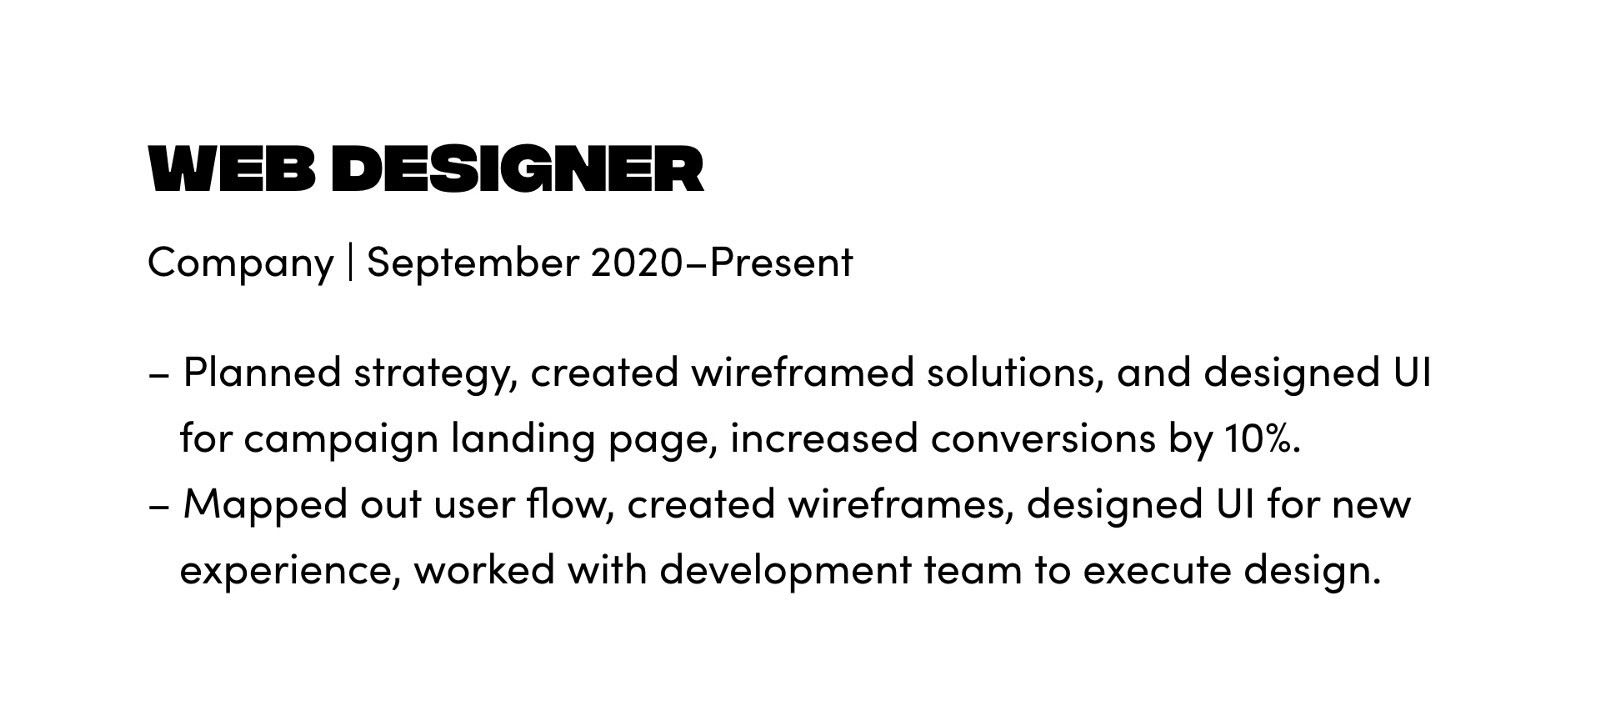 Example of how to format and write your experience for a freelance design job.